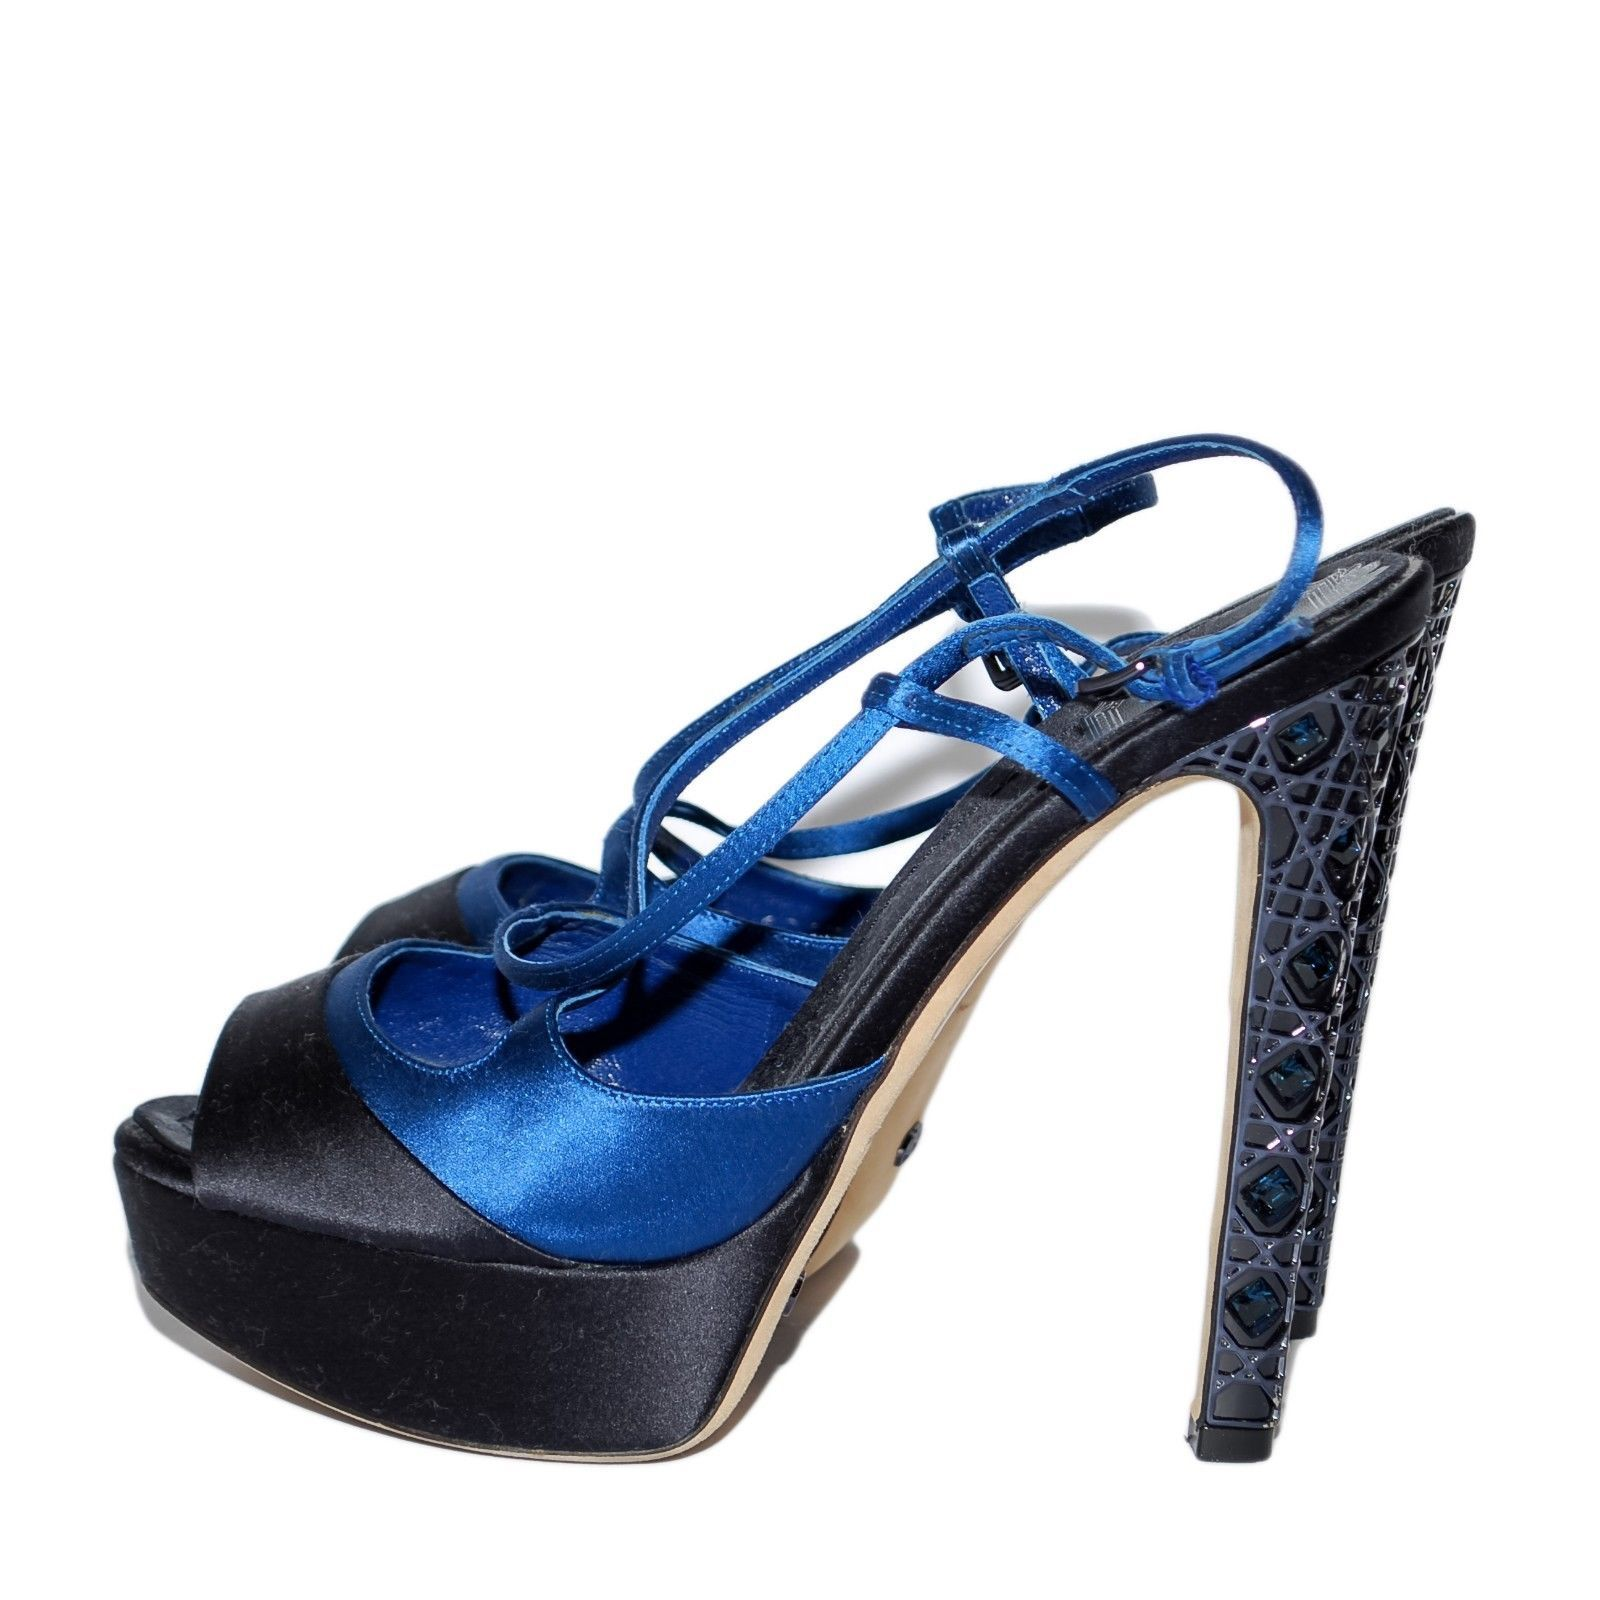 CHRISTIAN DIOR Blue Satin High Heels Sandals Buckle Stilettos Shoes Size US 6.5